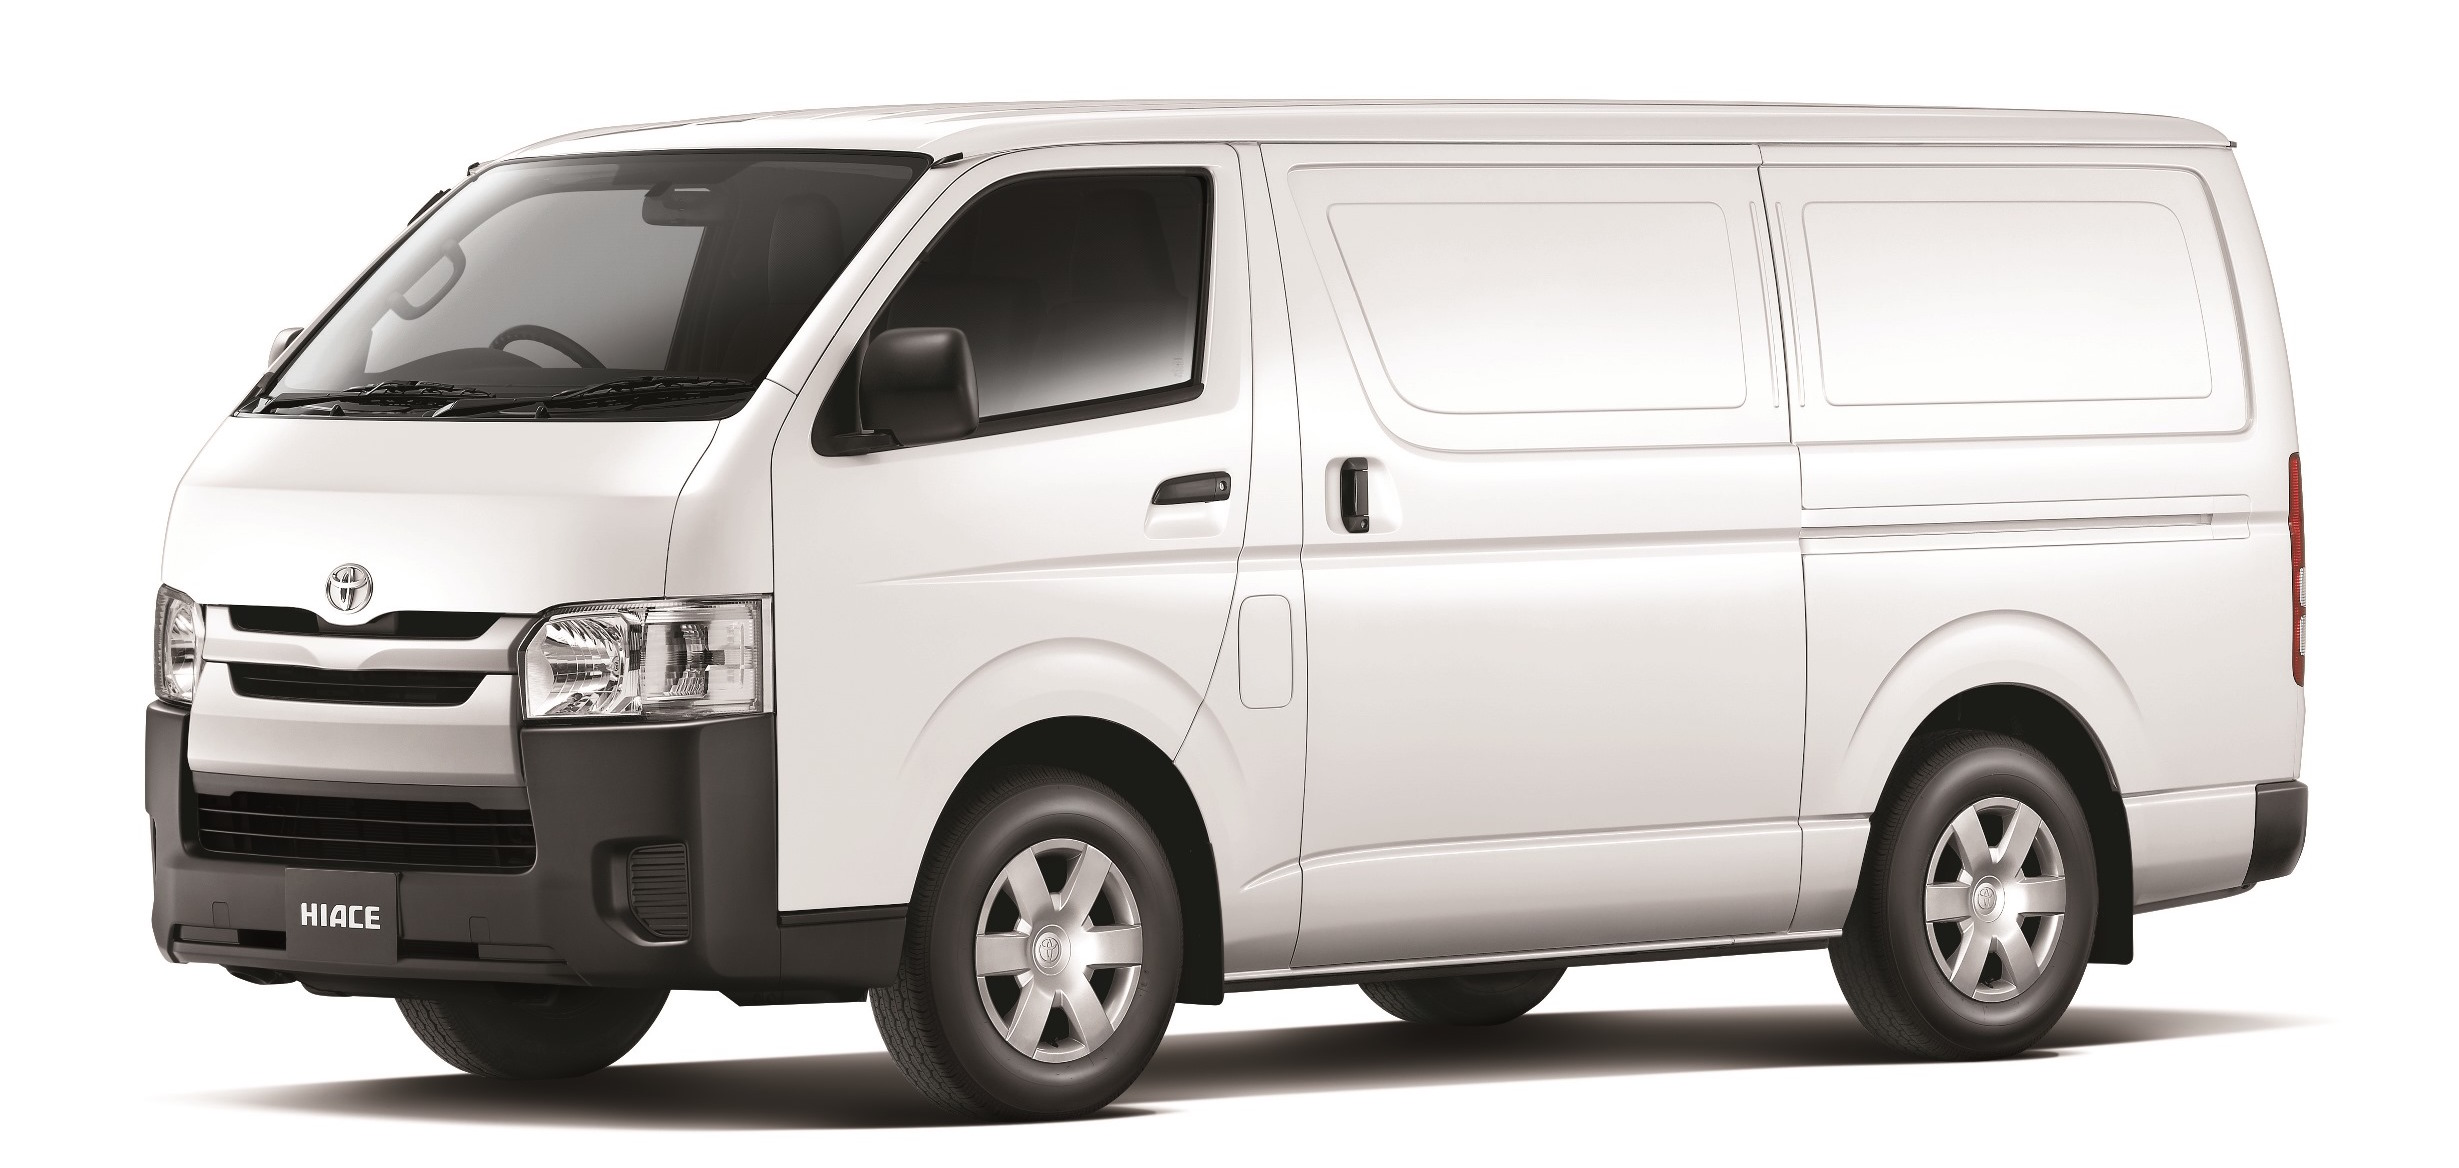 15 seater tempo traveller in bangalore dating 7